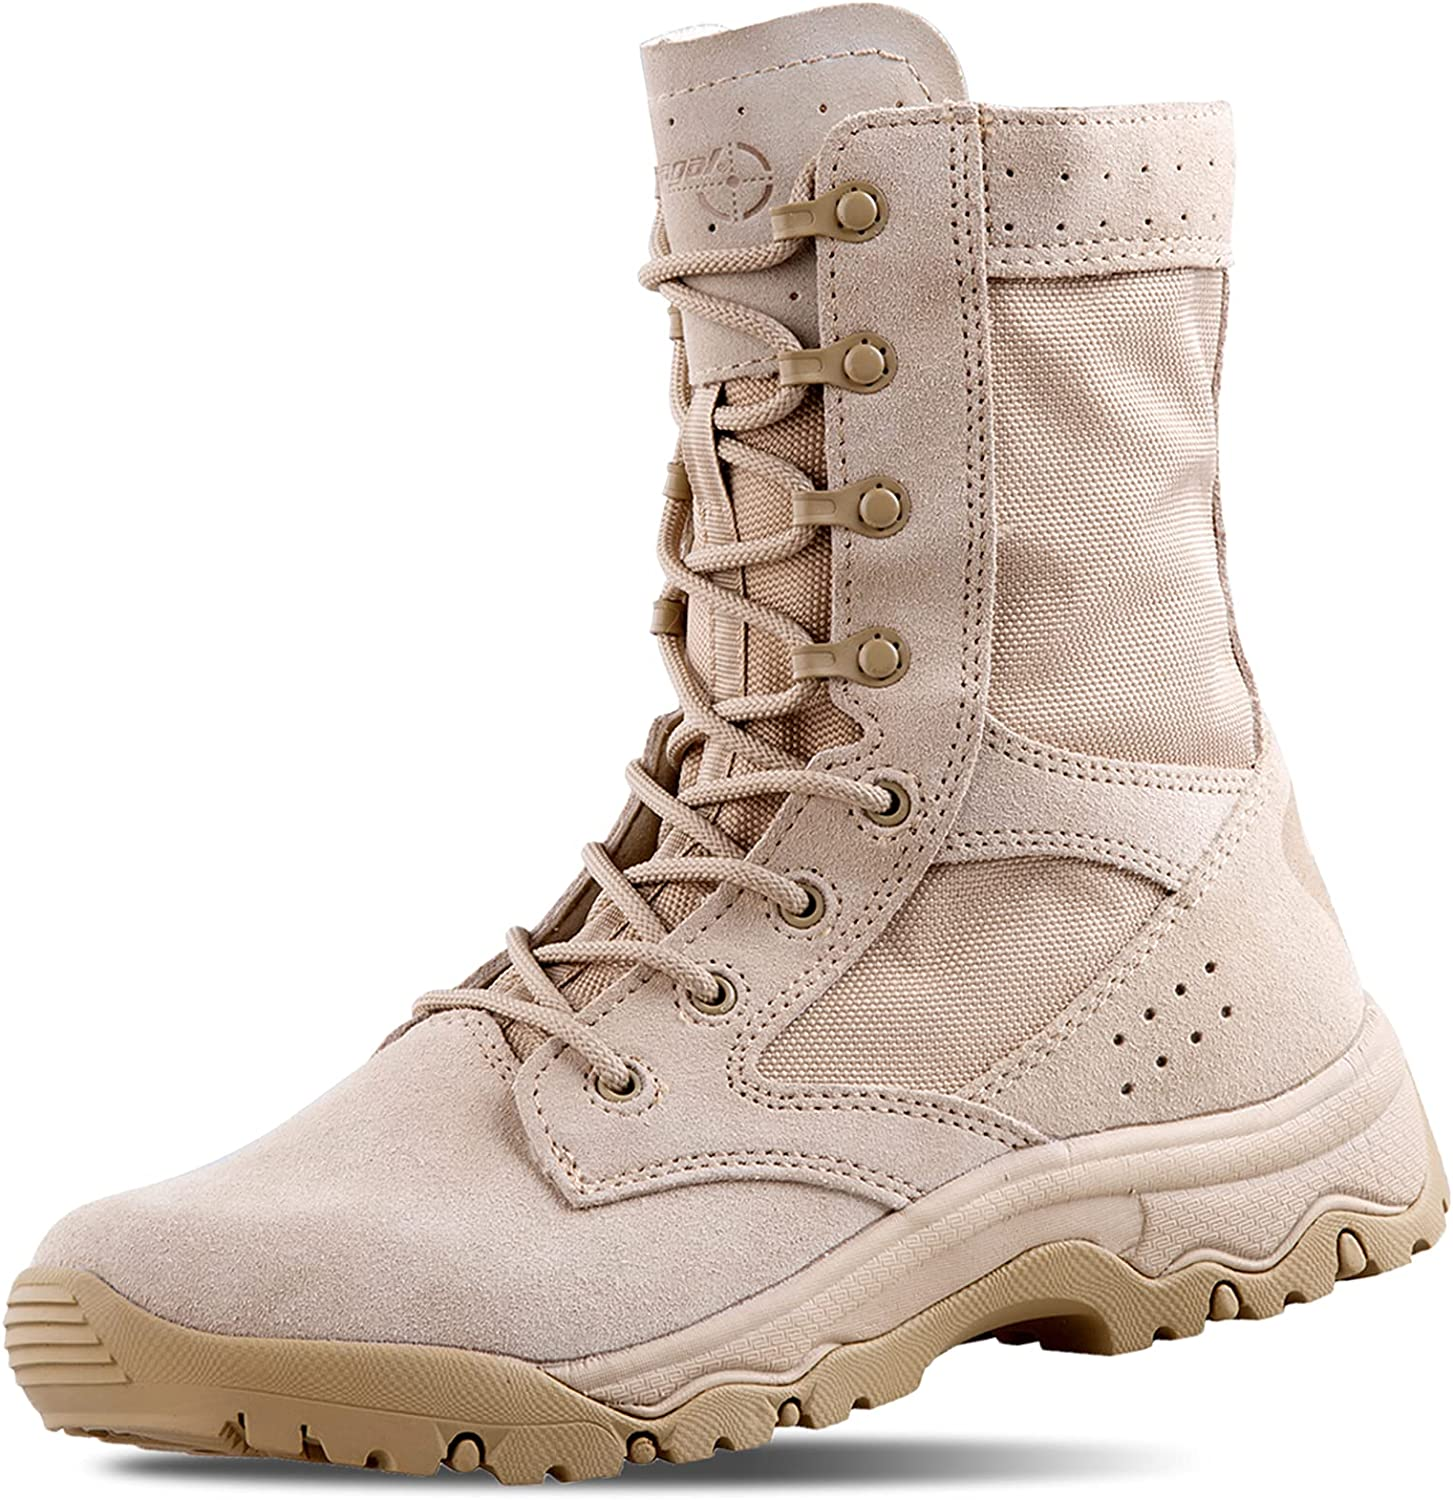 Hanagal Men's 8 inch Desert for Boots Tactical Max 53% OFF Com Fort Worth Mall Military